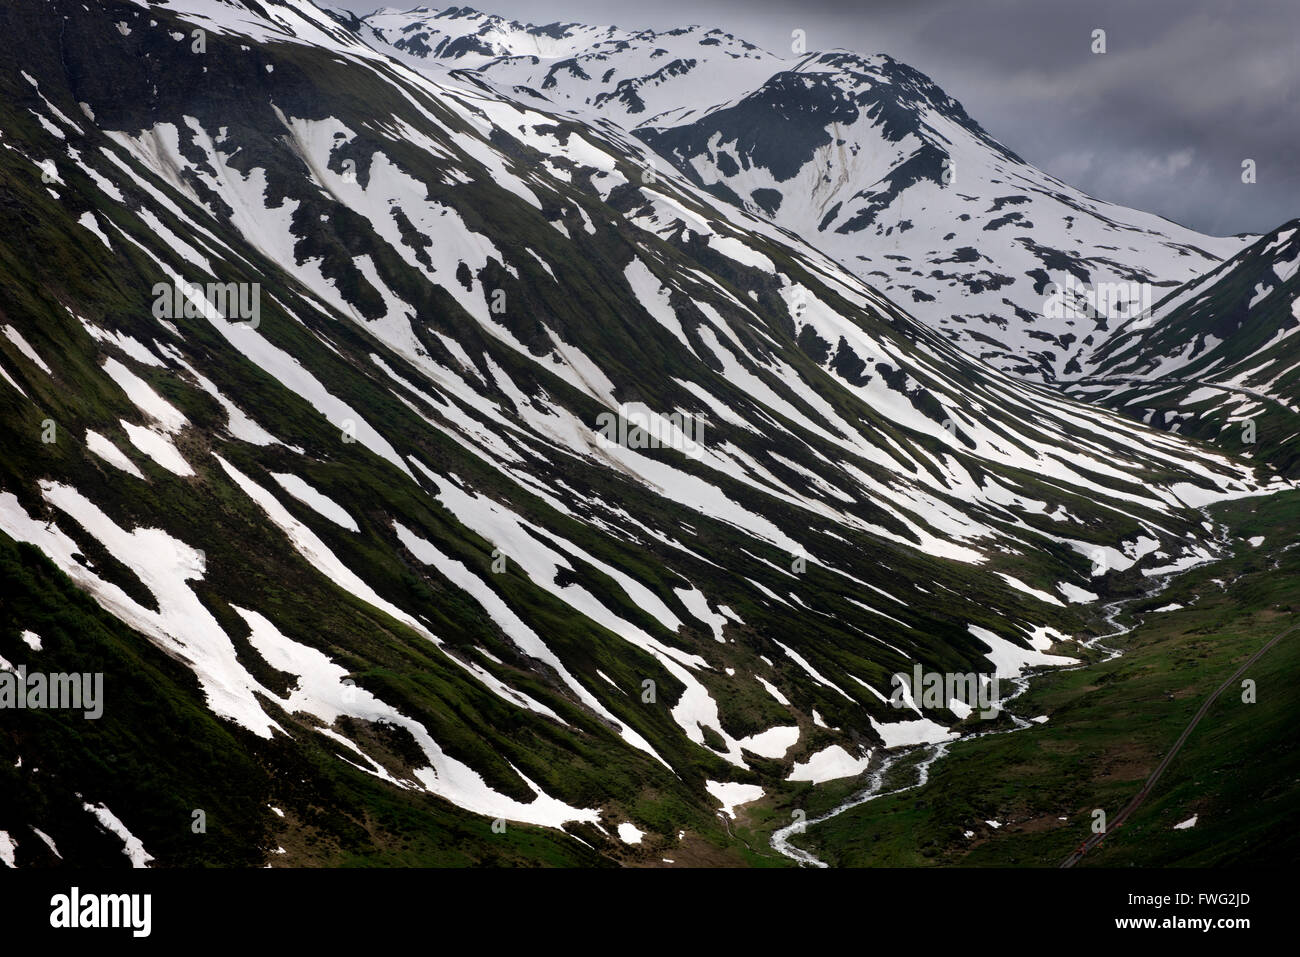 Furka Pass, with an elevation of 2,429 metres (7,969 ft), is a high mountain pass in the Swiss Alps connecting Gletsch, Stock Photo